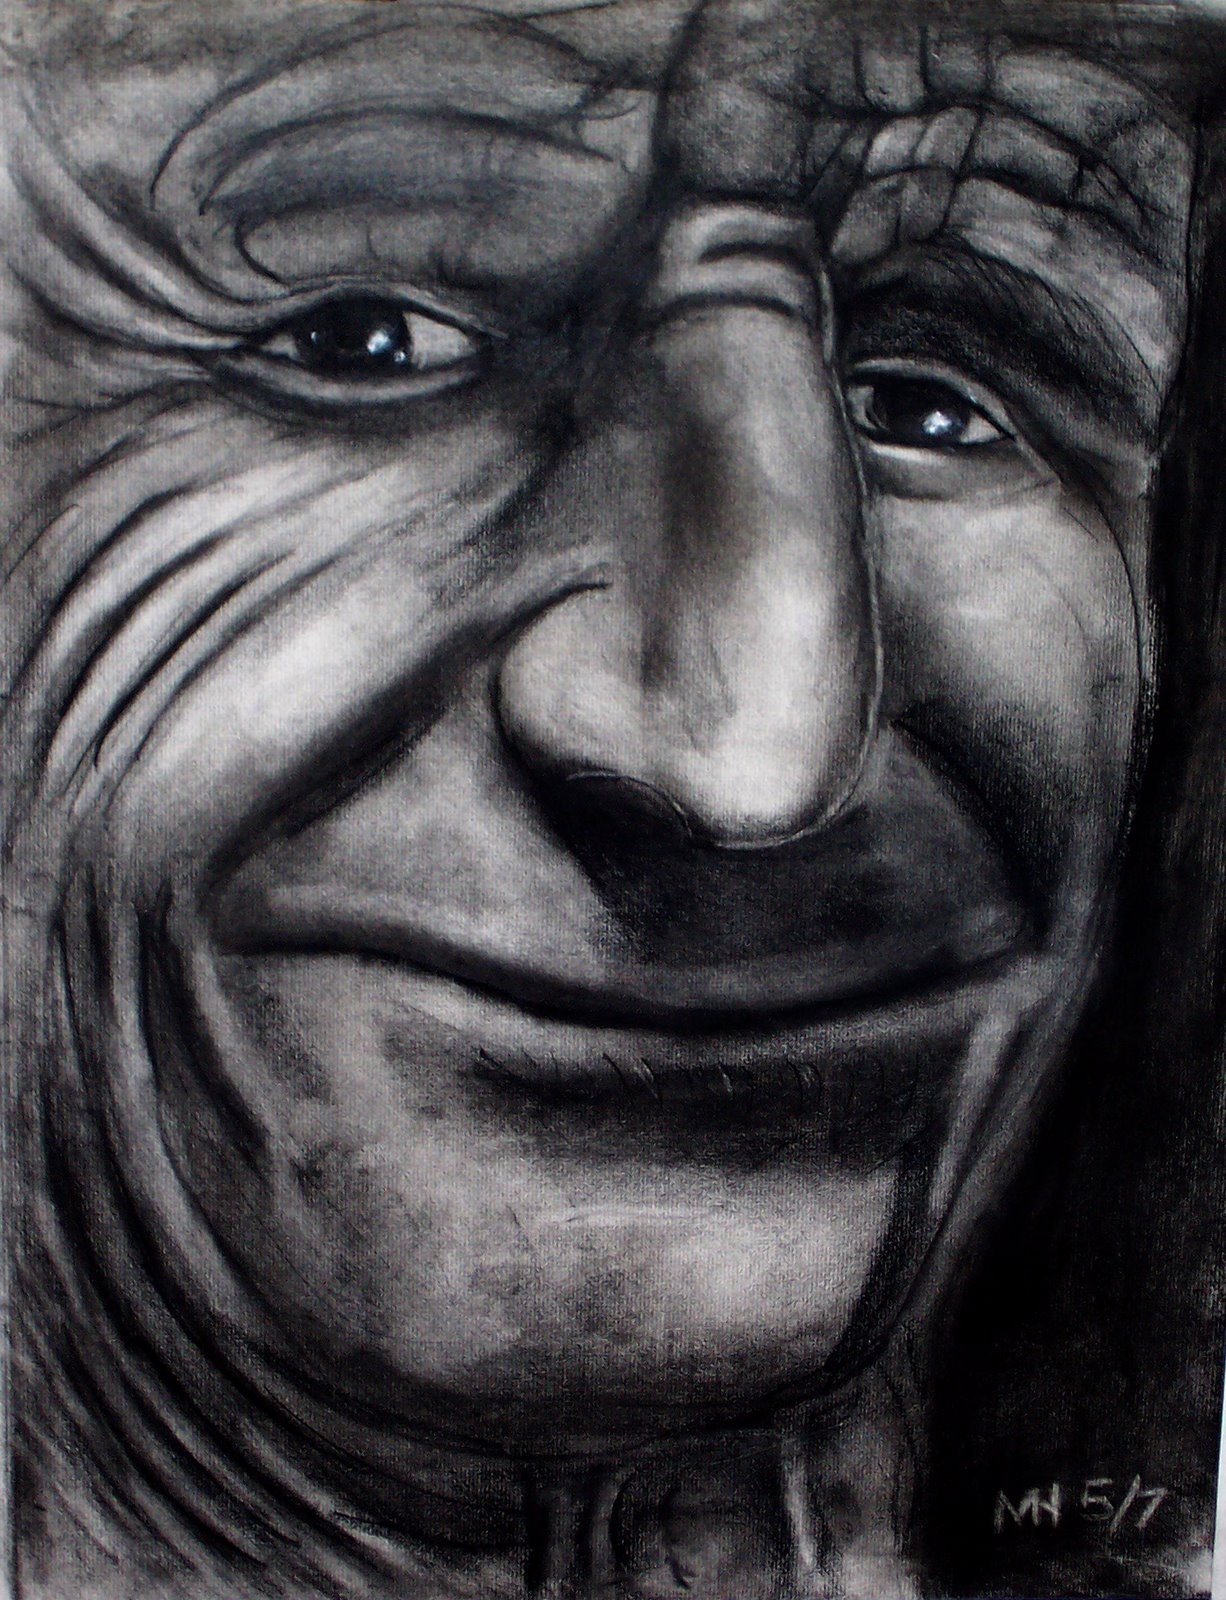 fast eddie essay Producing great vodka starts with using the best ingredients we are proud to make all our vodkas with nothing but premium juices, essential oils, natural sweeteners & local honey.